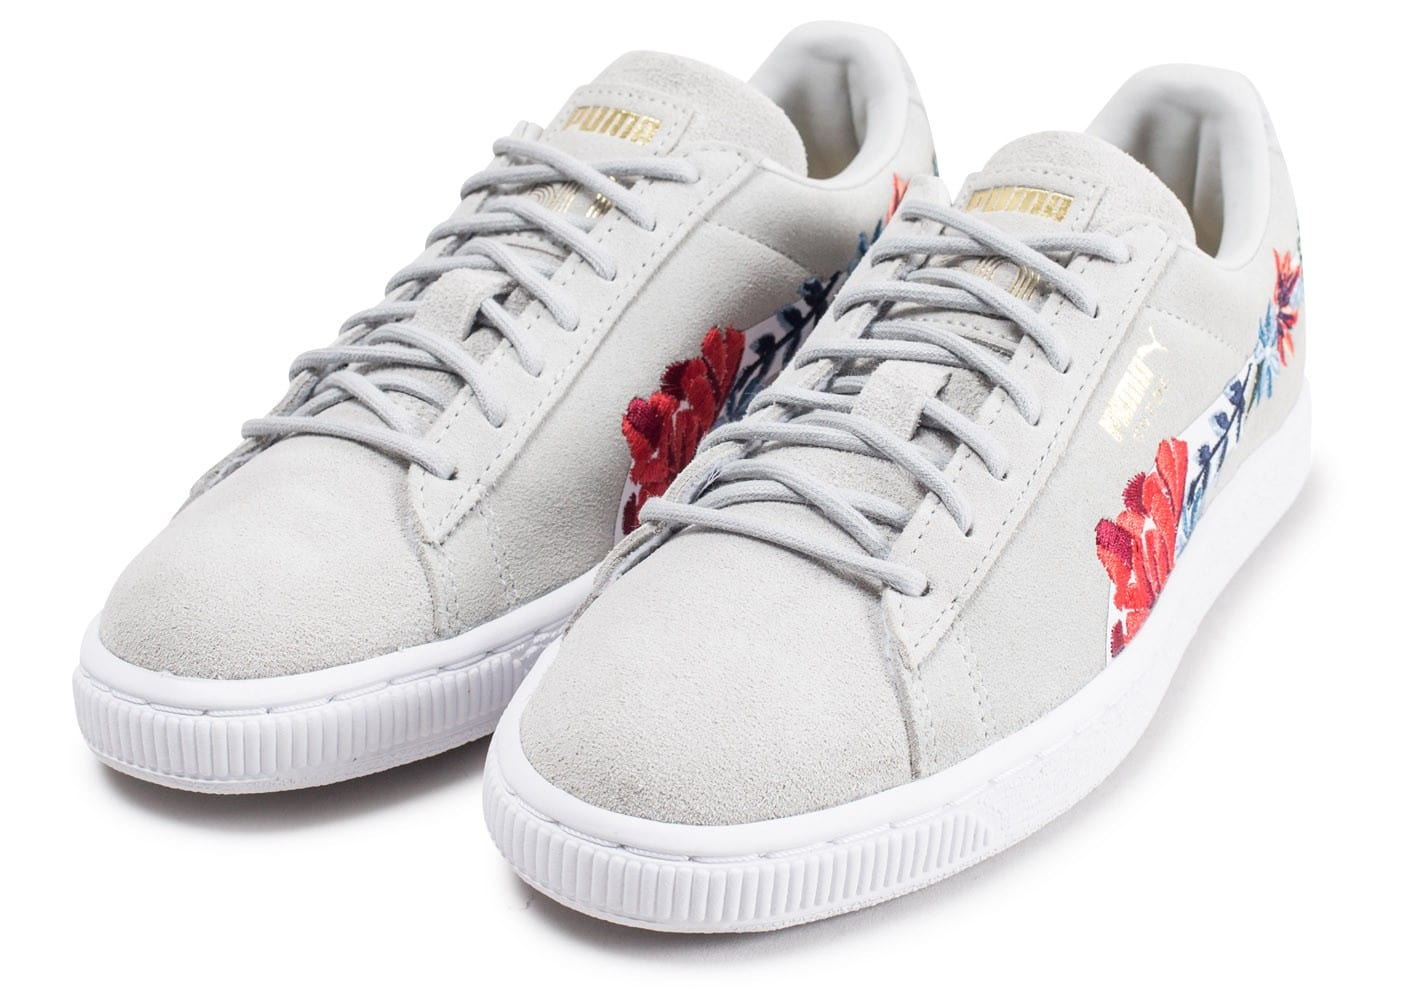 Embellished Les Chaussures Grise Suede Puma Baskets Toutes Hyper EnqF7Yvw